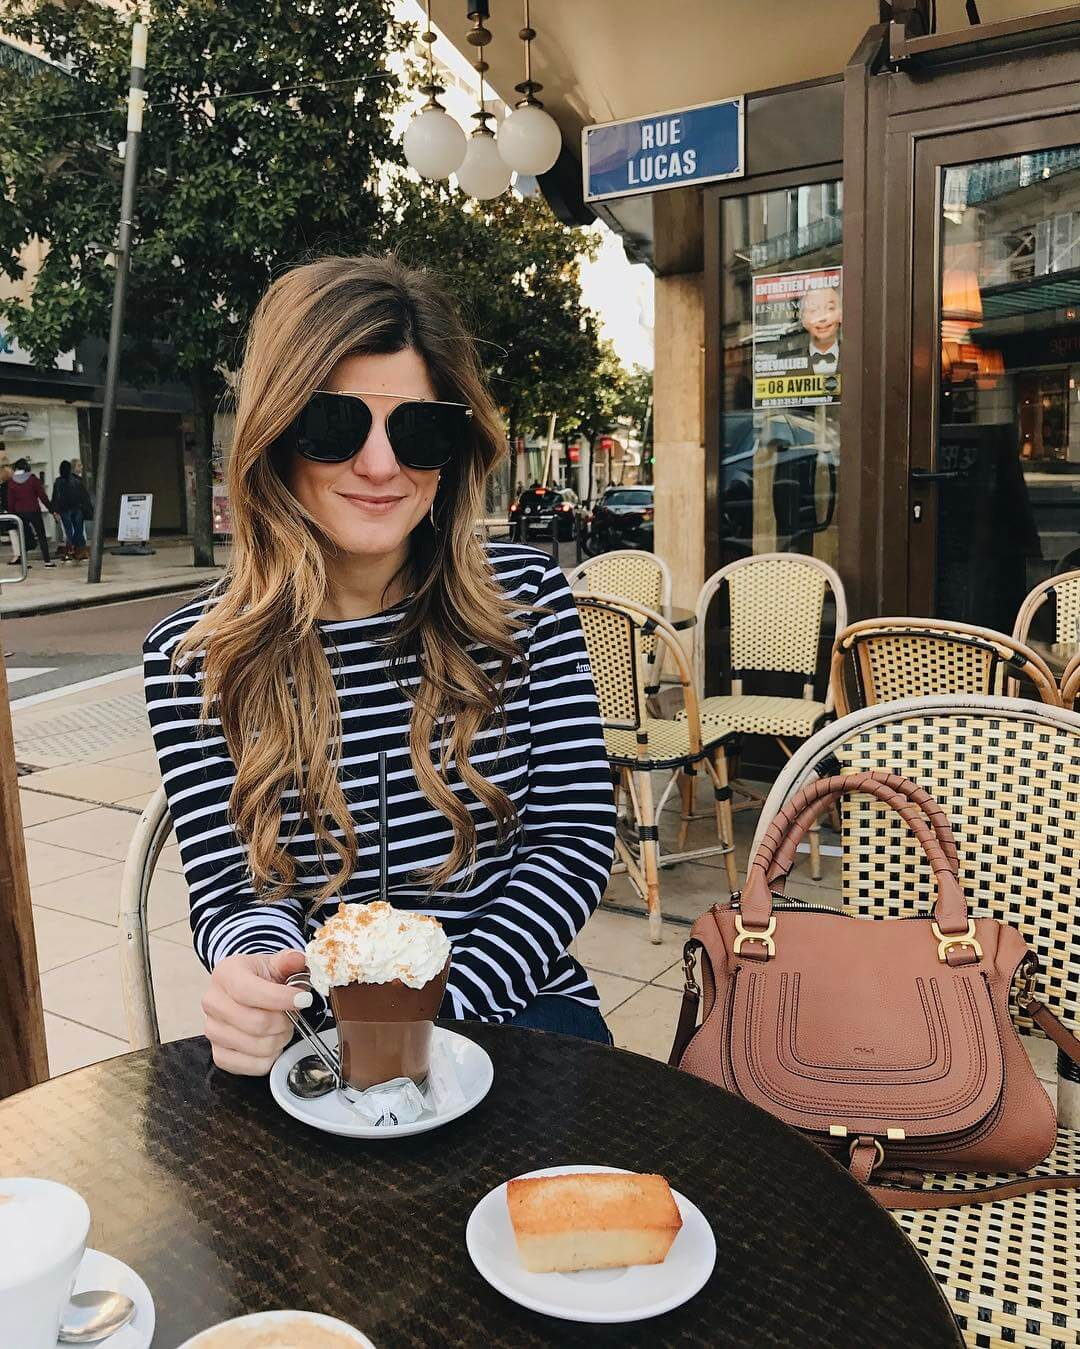 brighton keller drinking hot chocolate in vichy, france wearing striped top